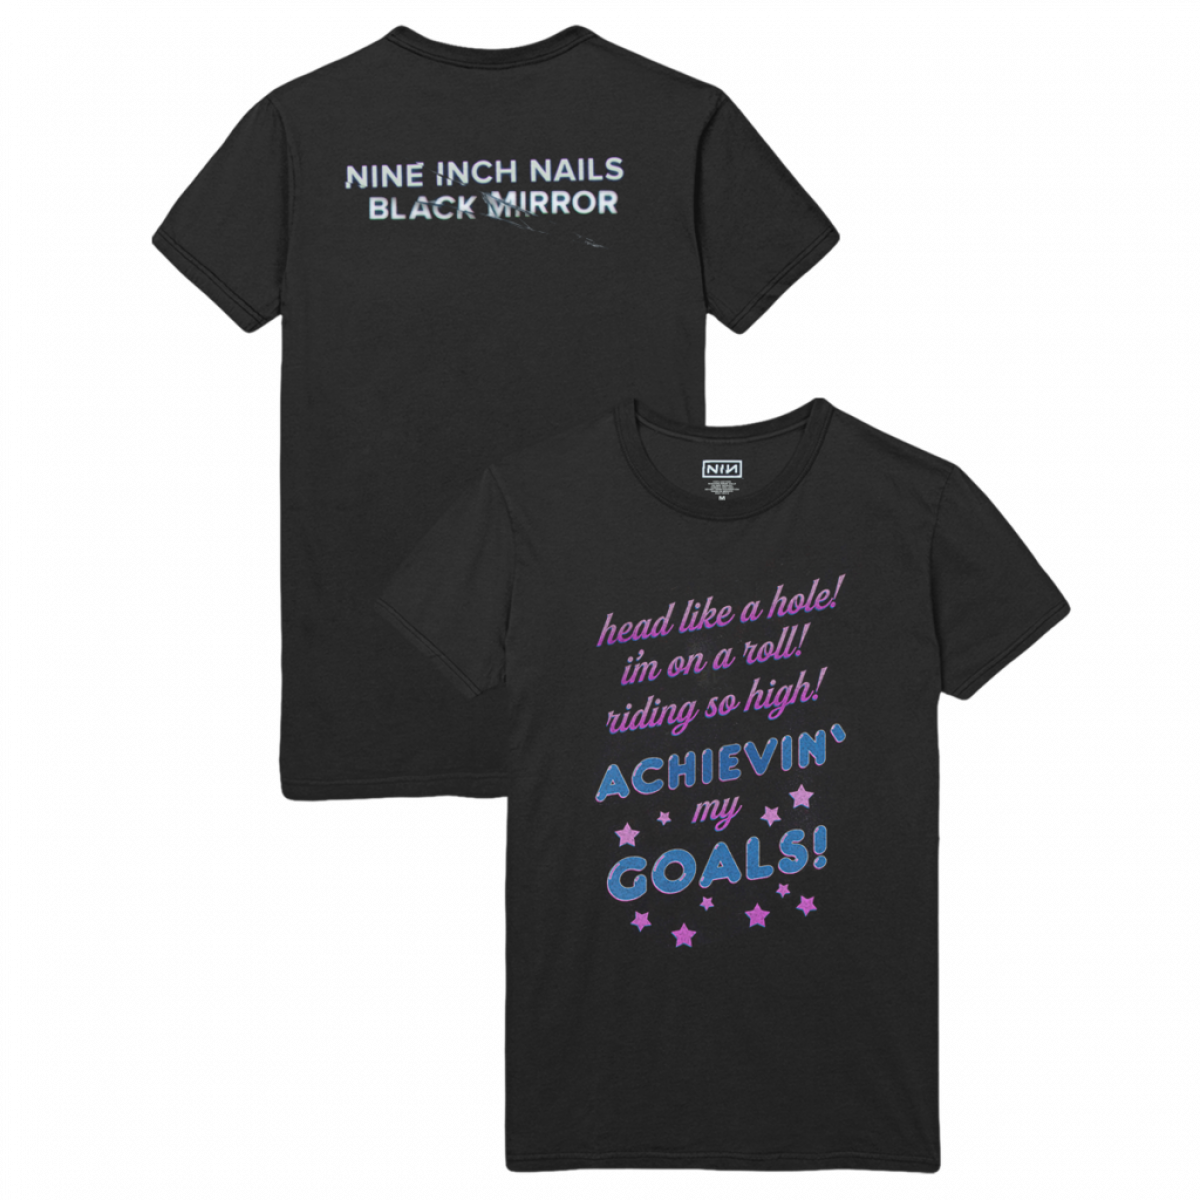 bae99e799 BLACK MIRROR Celebrates Its Return With A New T-Shirt From…Nine Inch ...